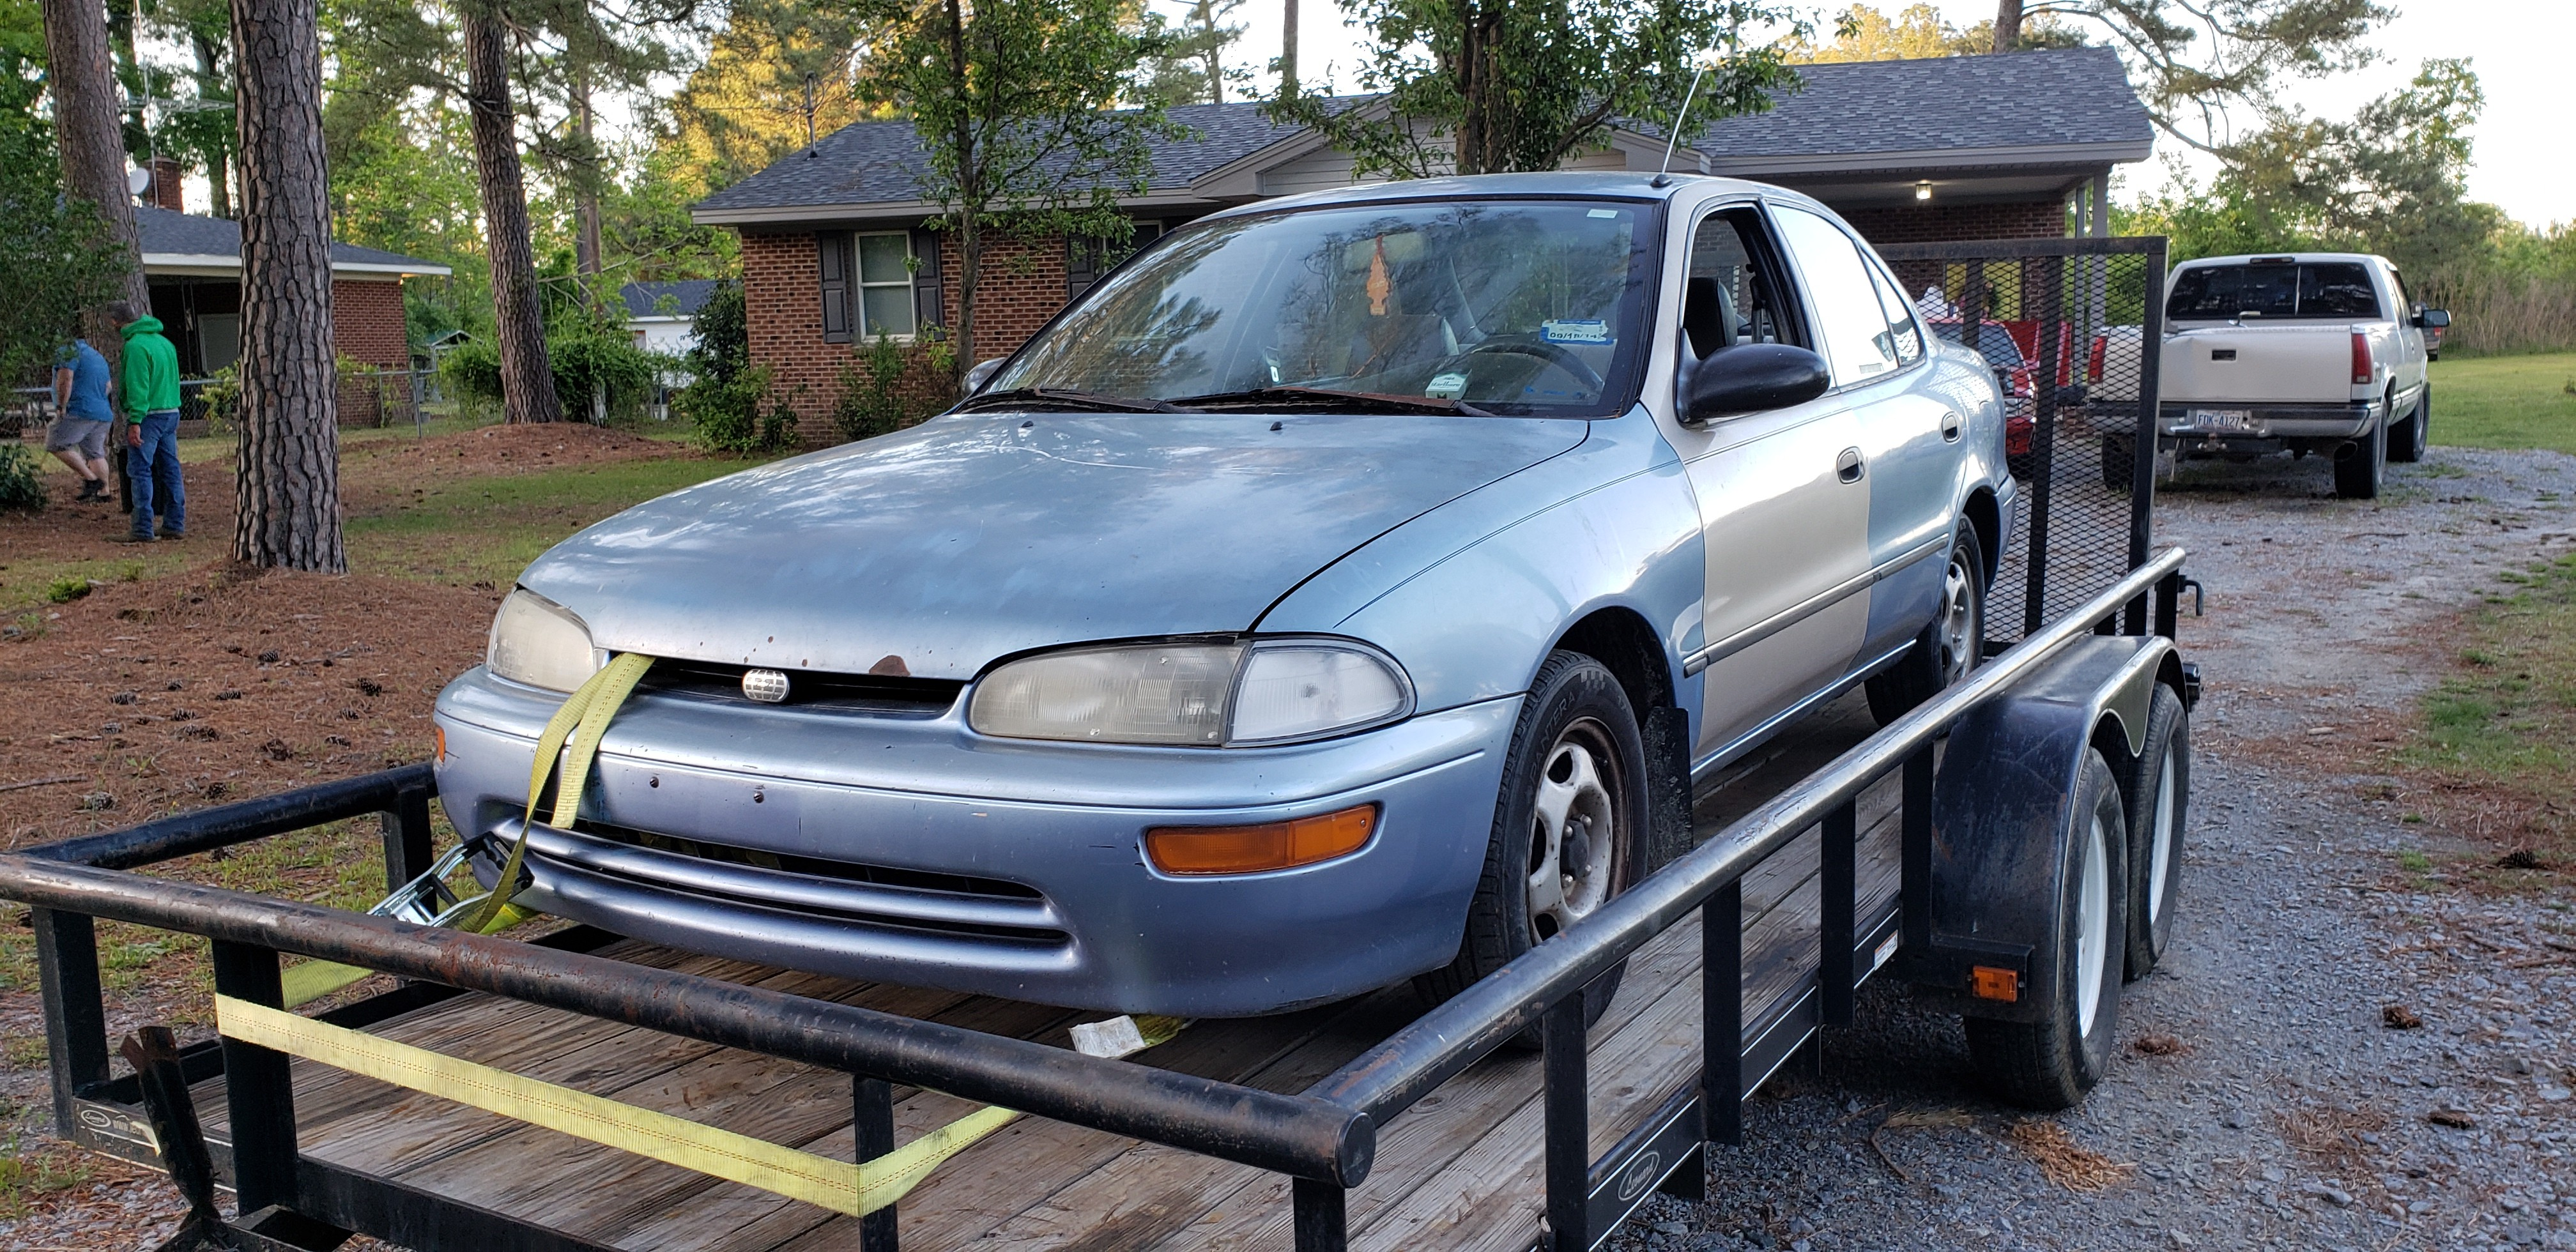 Not a Corolla, sorta...... Prizm build in North Carolina Uql2FY